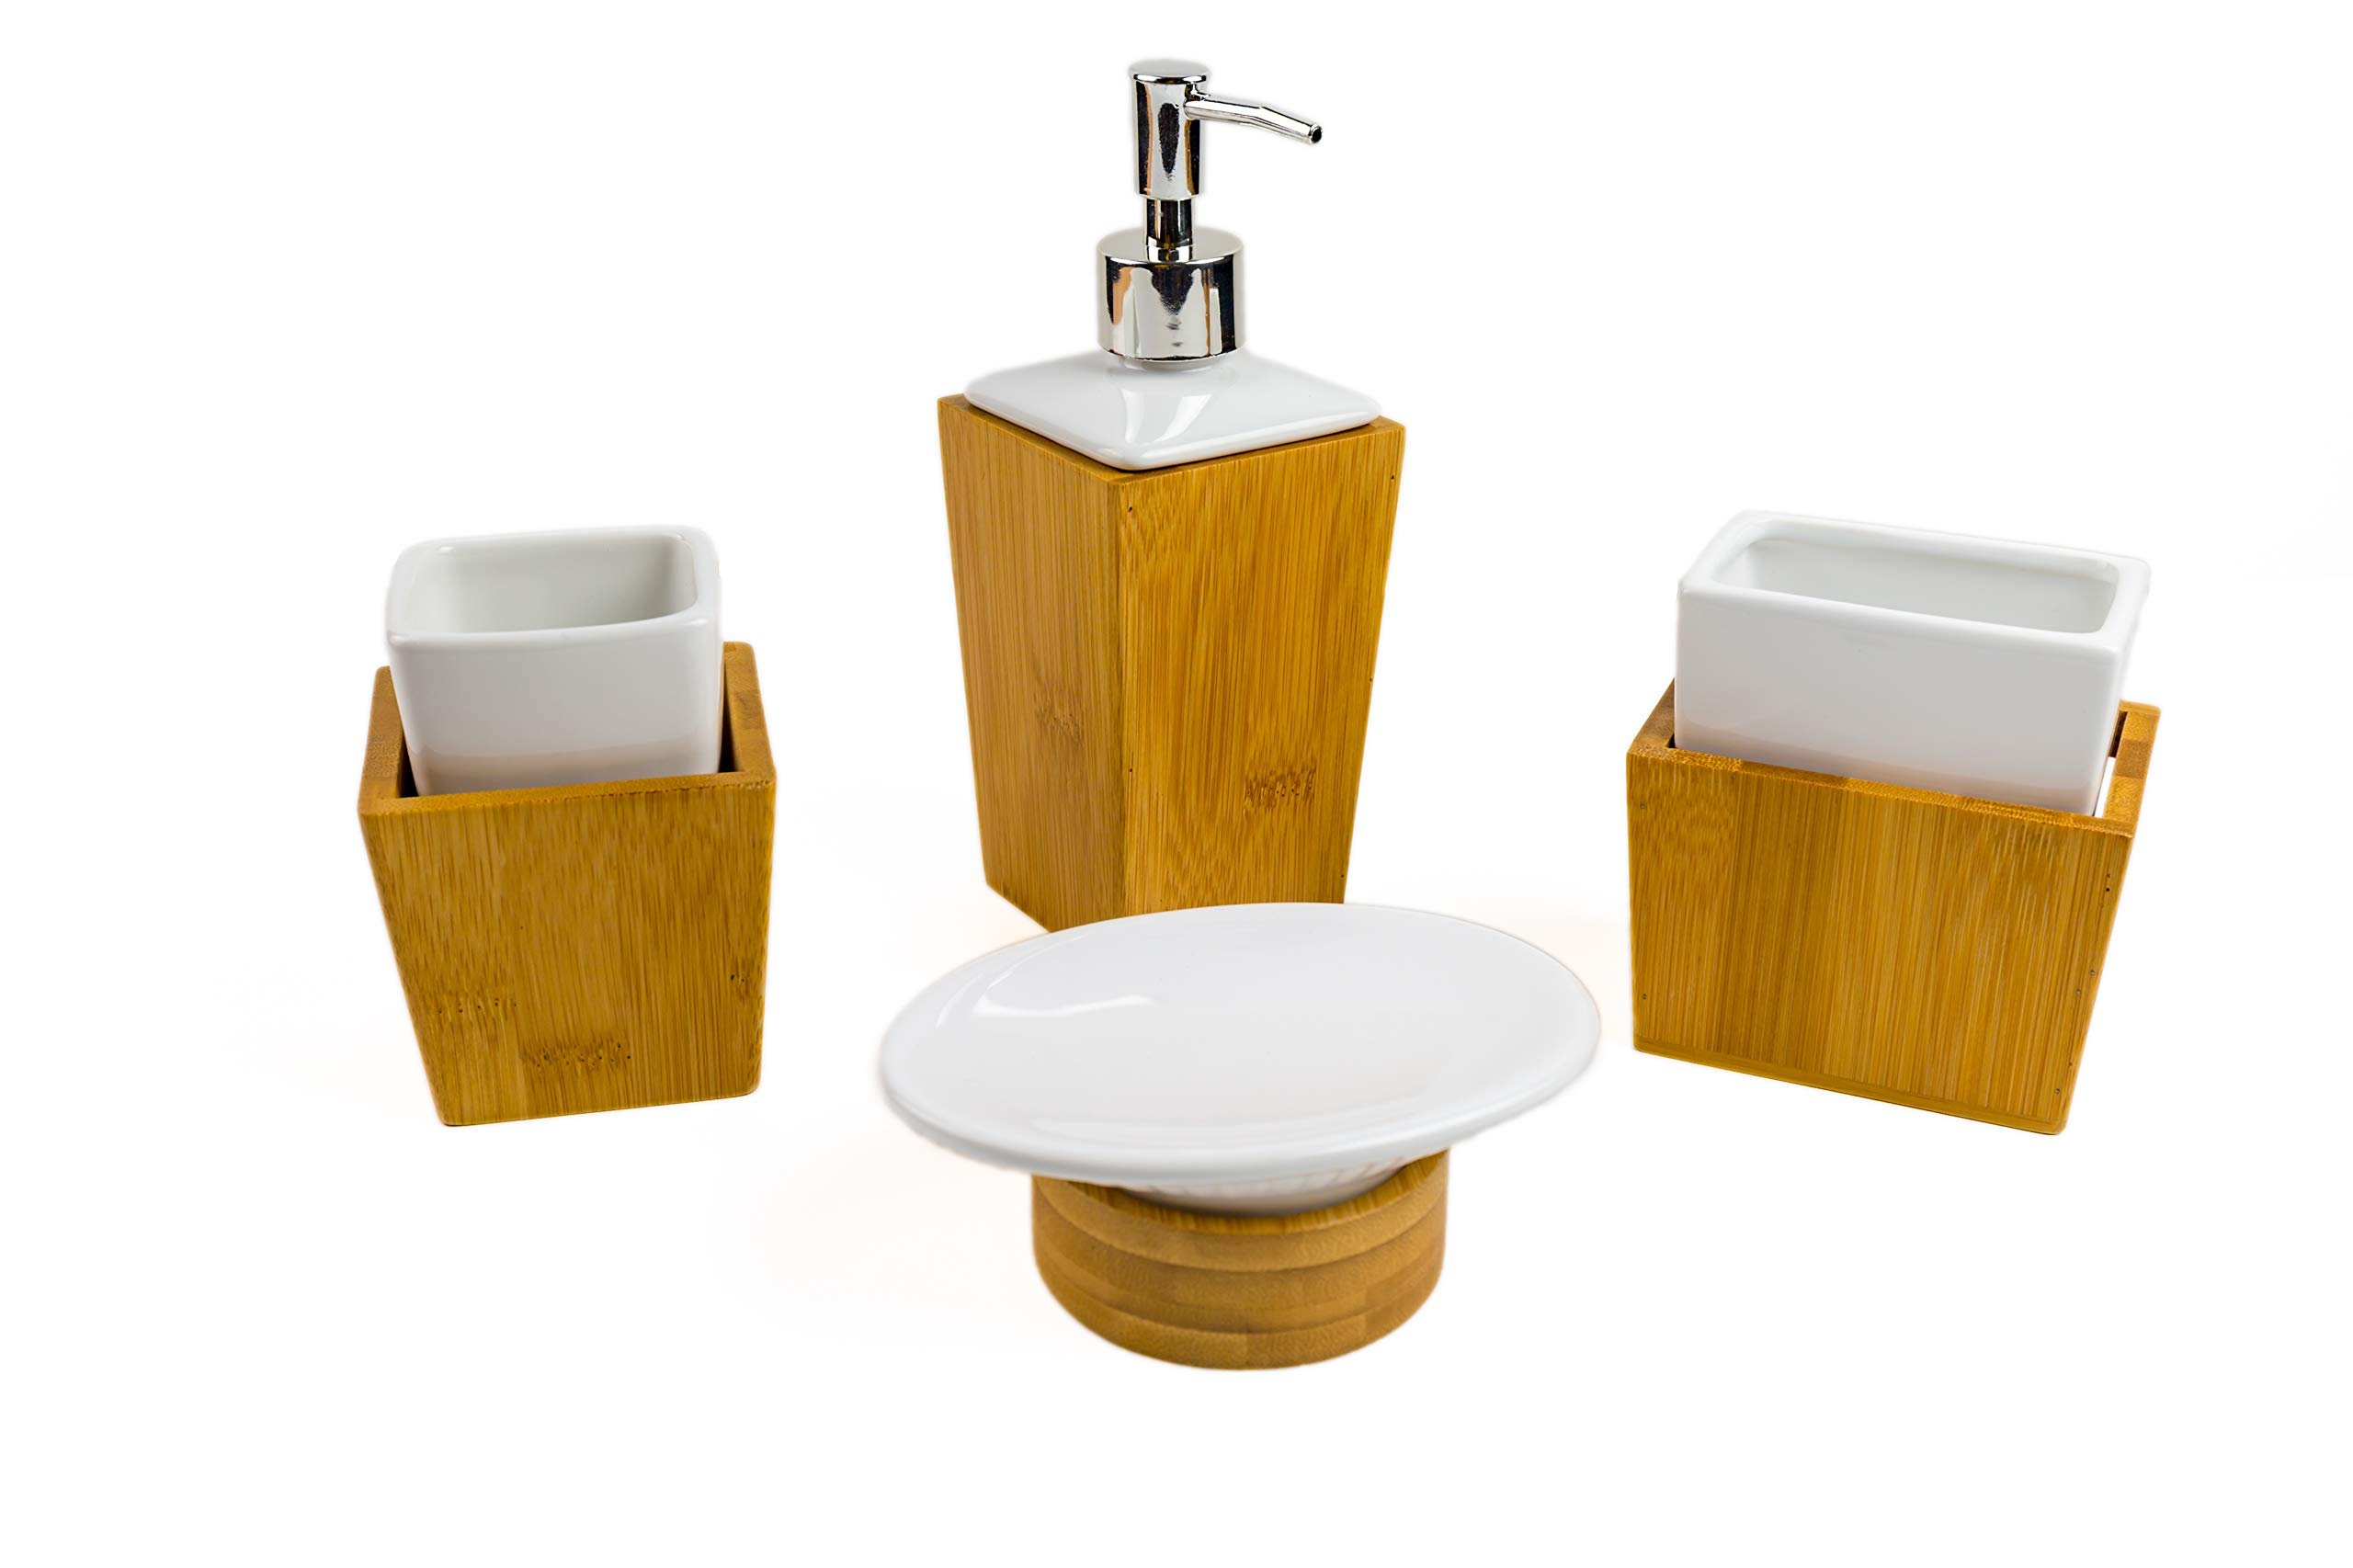 Bamboo Bathroom Accessories Set - Wood Bathroom Set Complete with Soap Dispenser, Toothbrush Holder, Soap Holder, Mug - Bamboo Wood Bathroom Modern Vanity Set